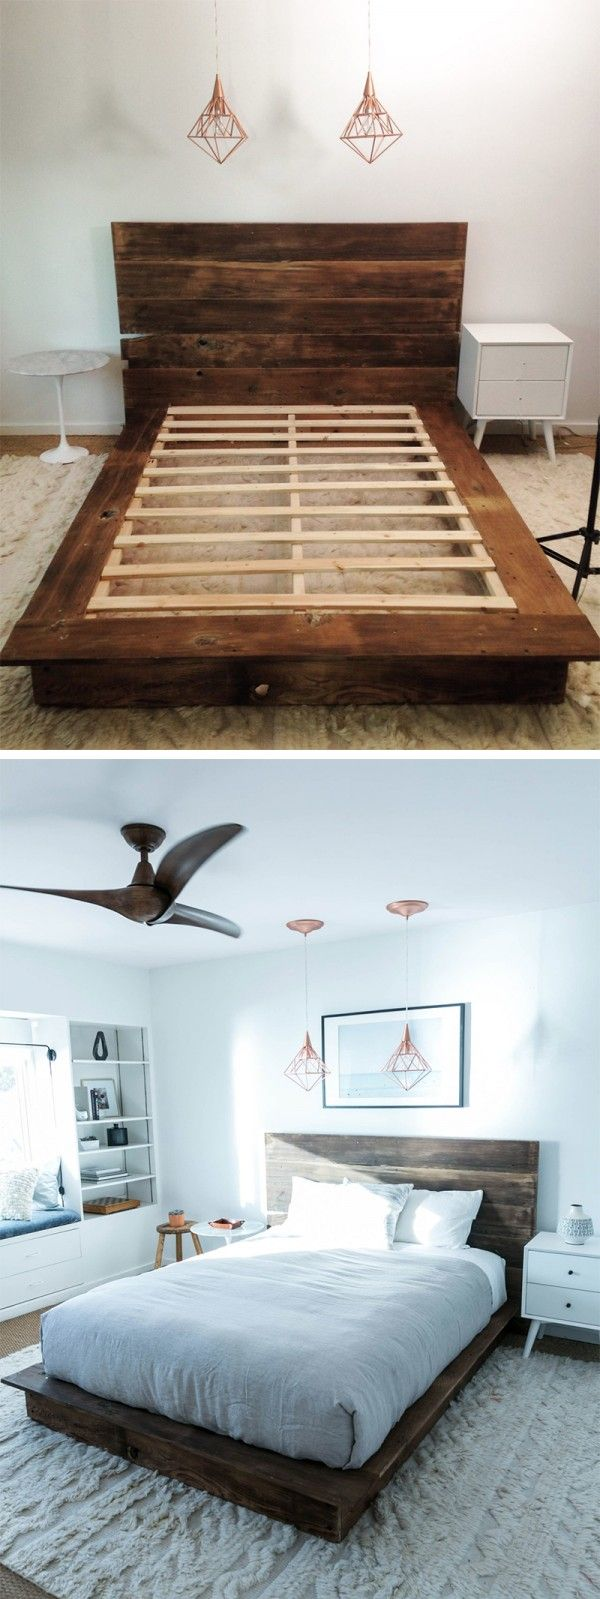 Simple bed frame ideas - 20 Easy Diy Bed Frame Projects You Can Build Yourself